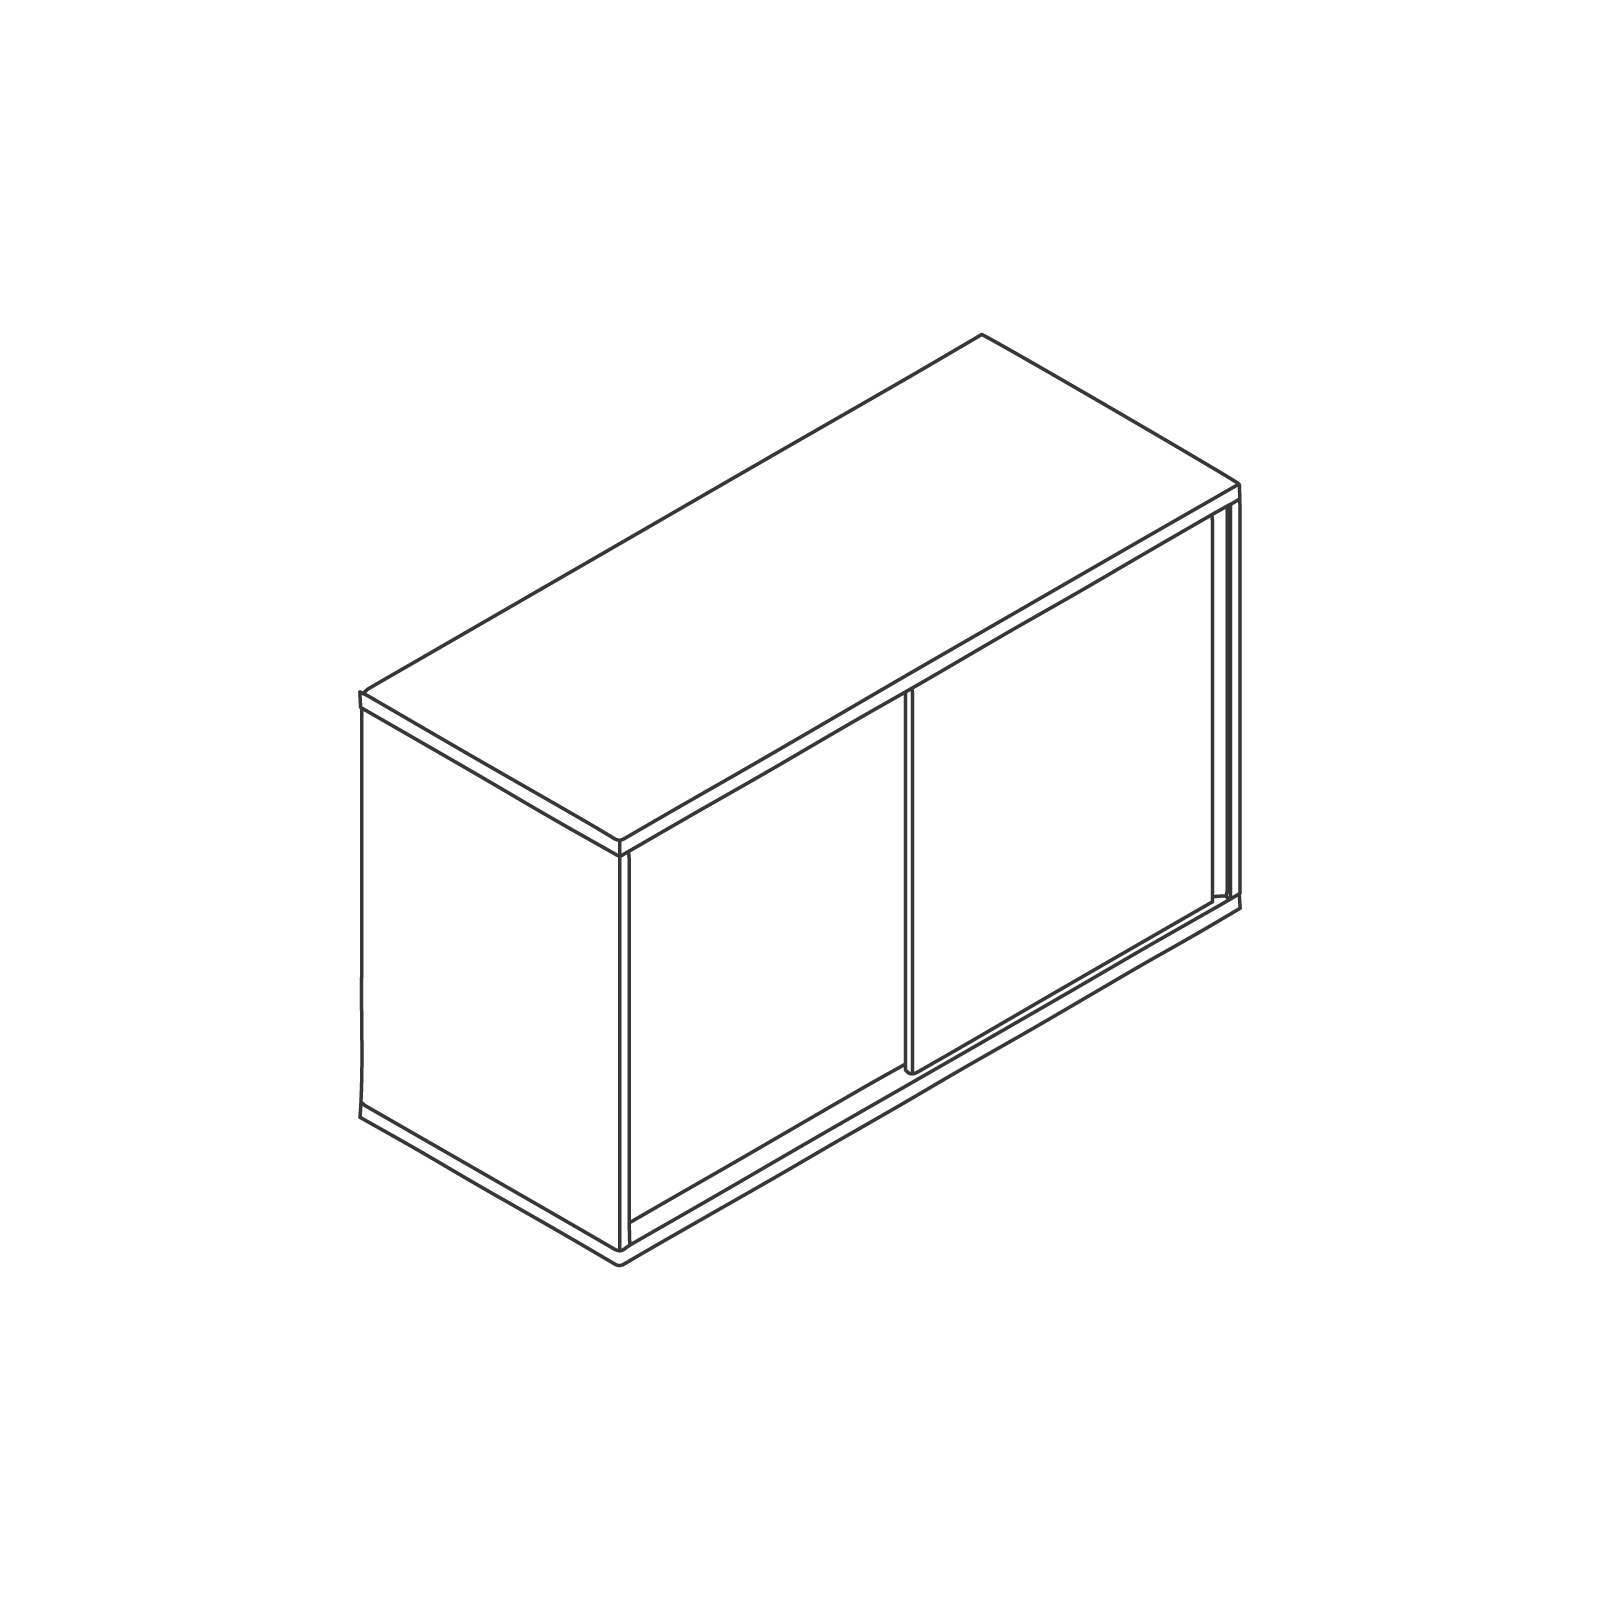 A line drawing of Softbox Storage Credenza–Small.